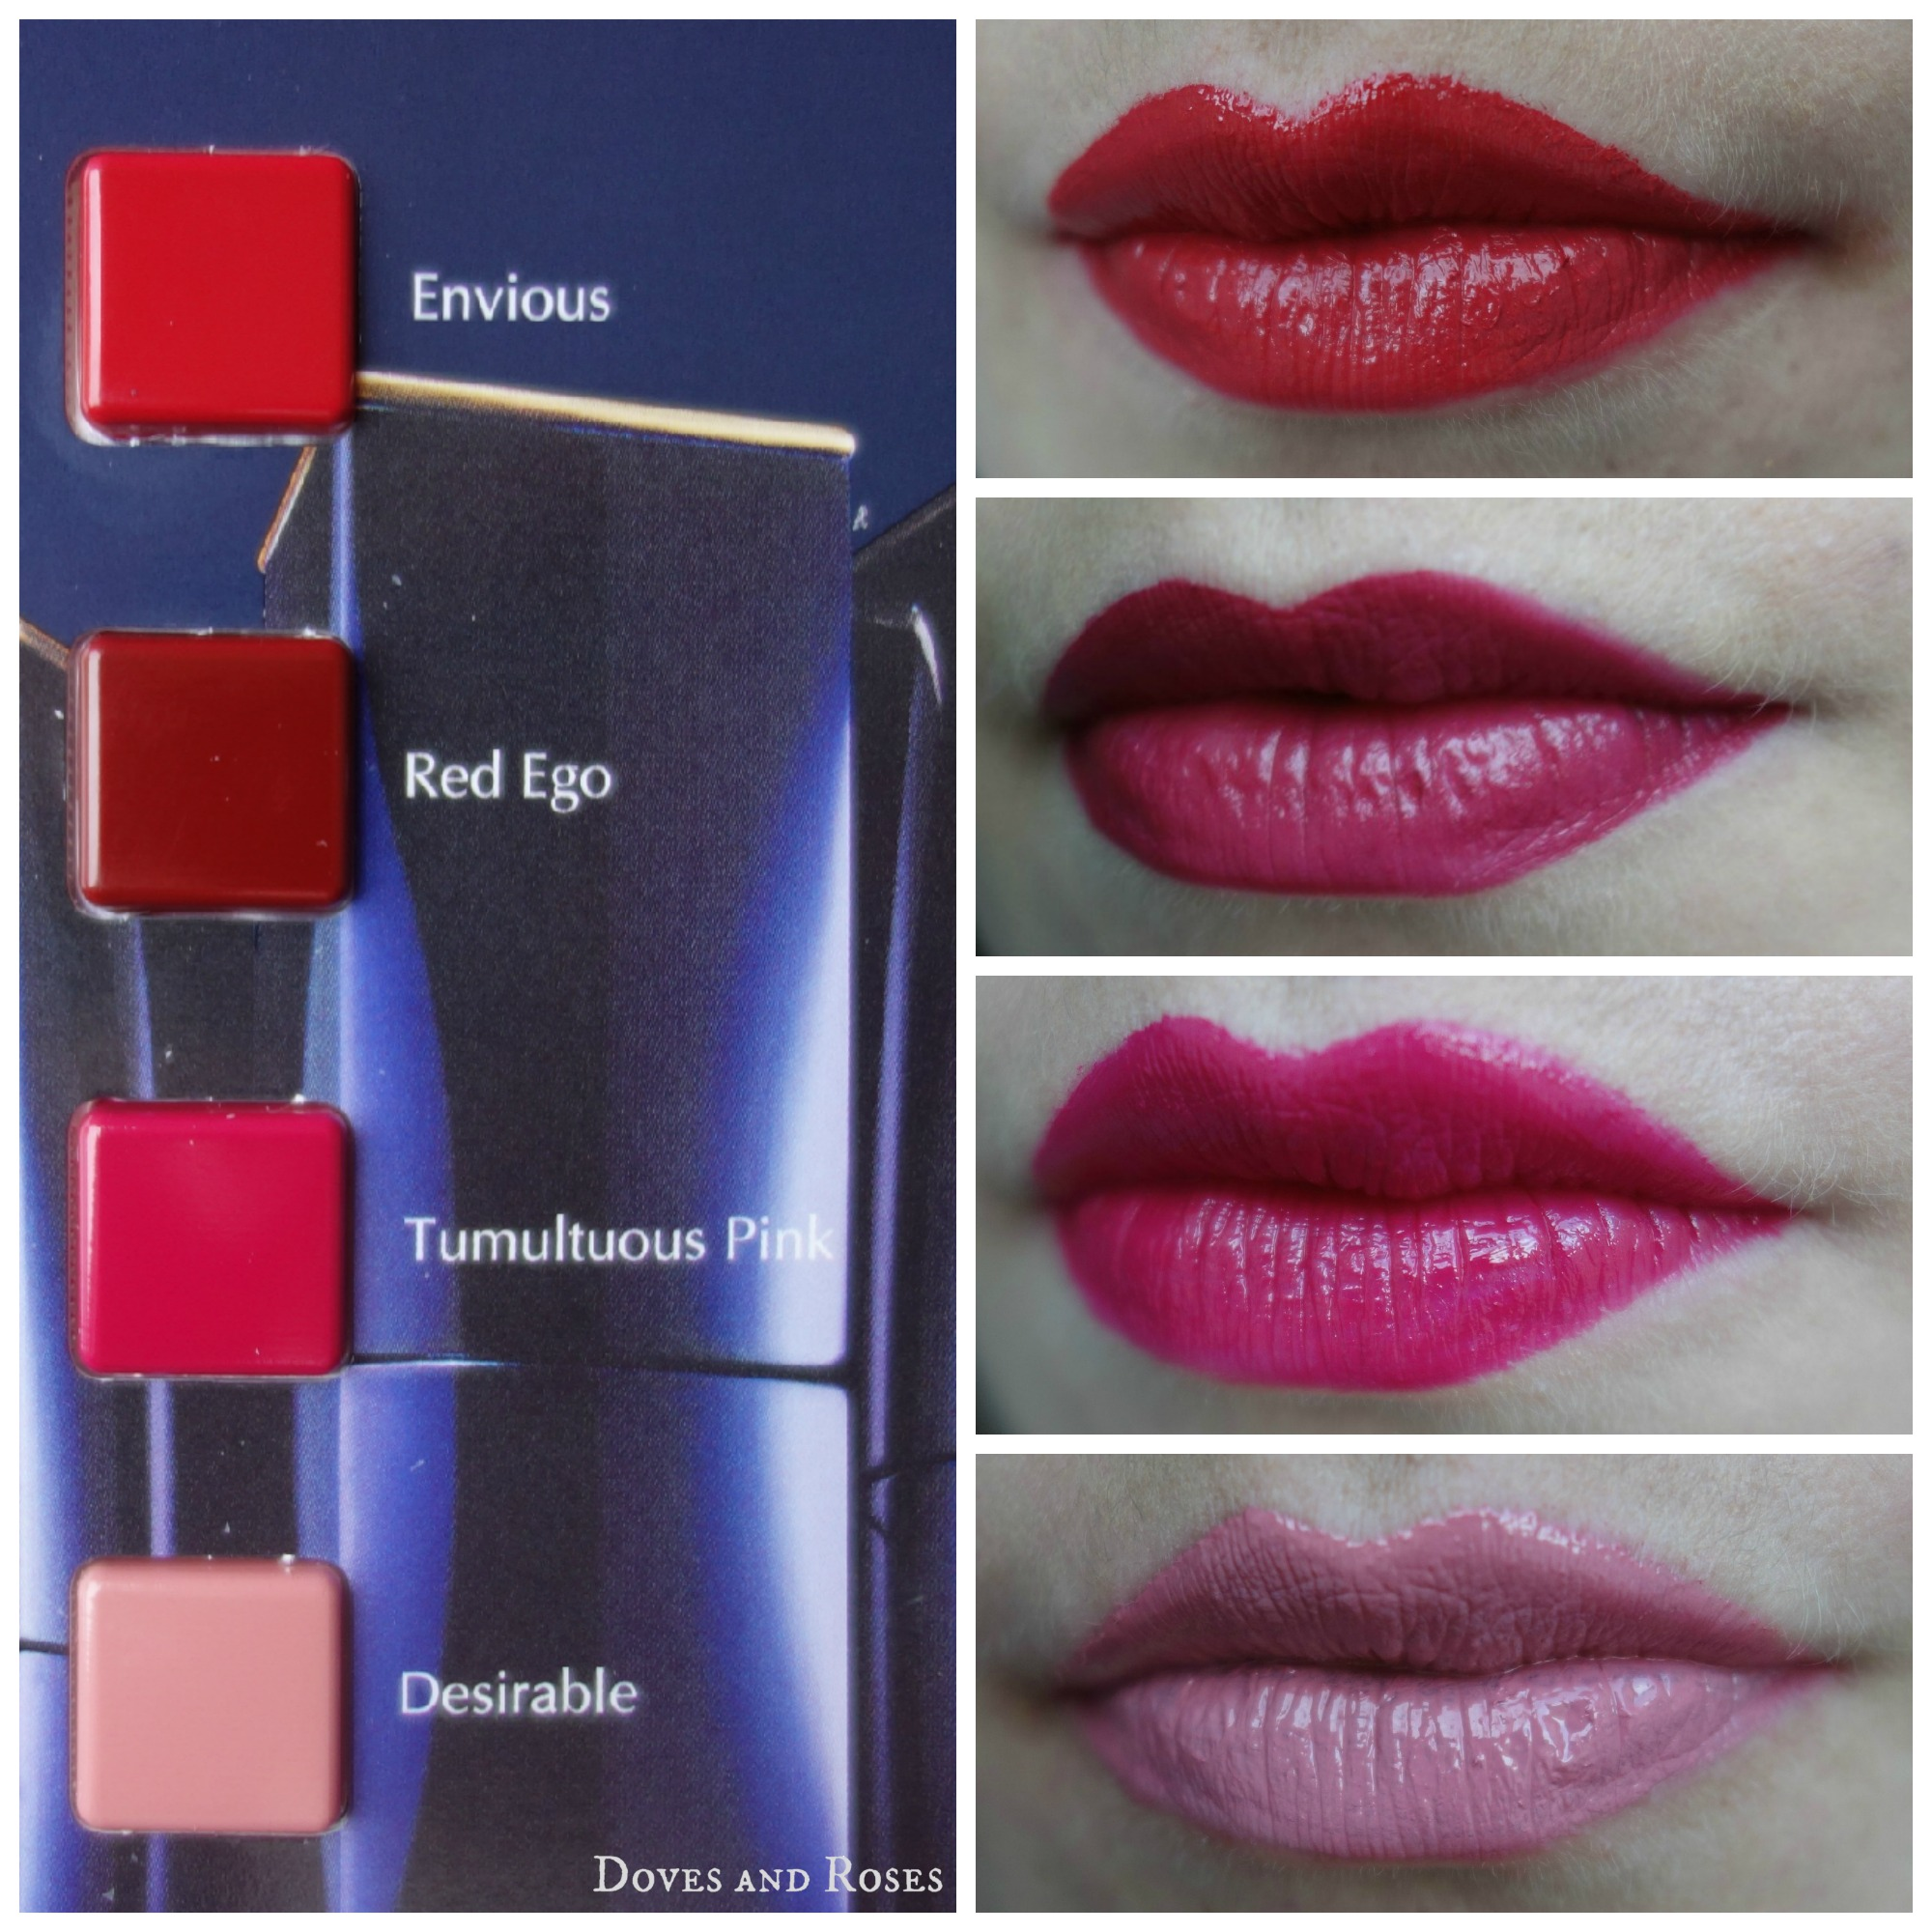 Pure Color Envy by Estee Lauder – Doves and Roses